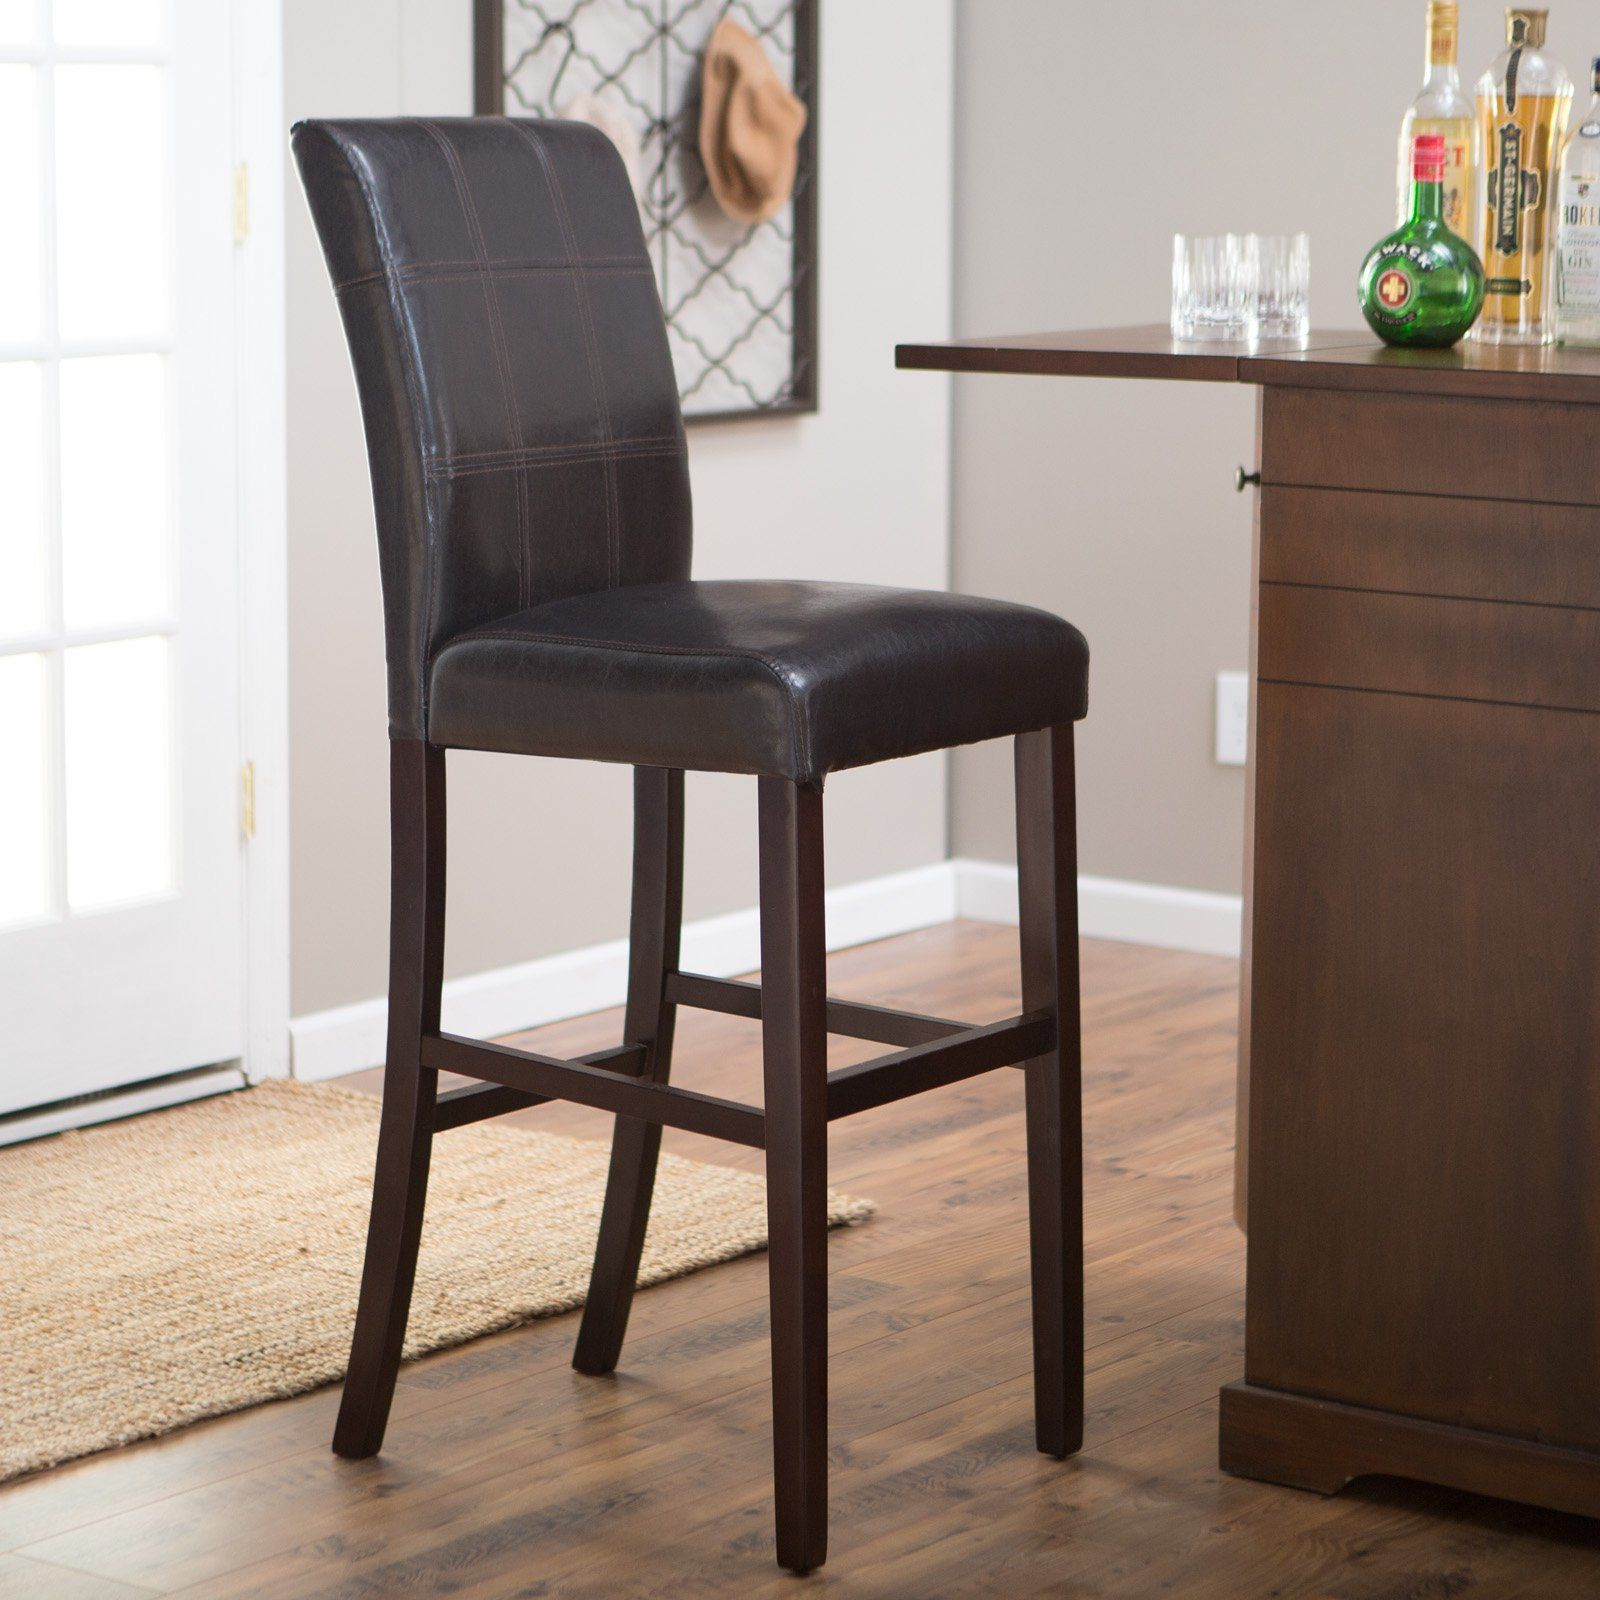 2019 40 Inch High Bar Stools Modern Contemporary Furniture Check